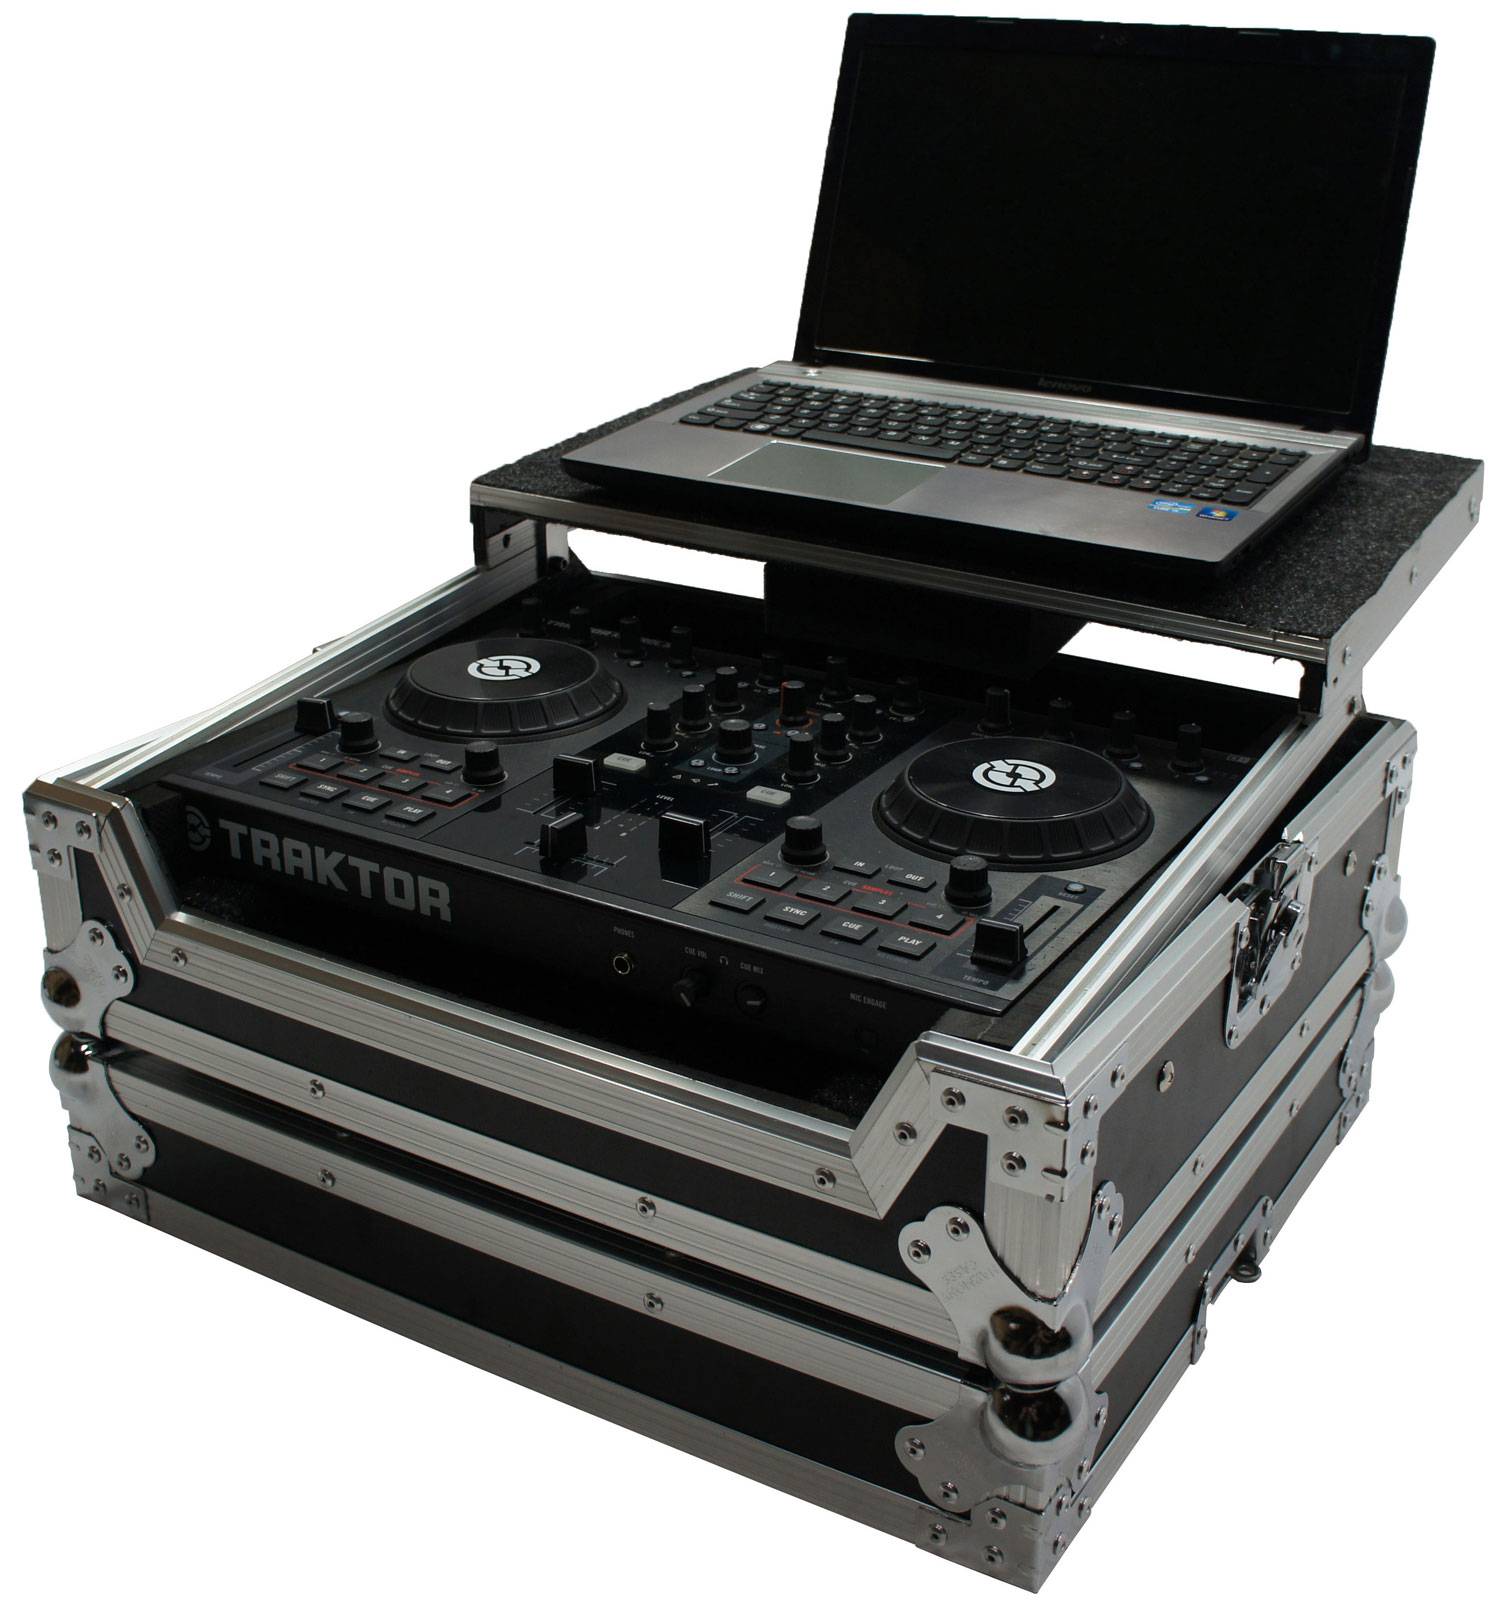 hight resolution of harmony hctks2lt flight ready glide laptop stand dj case traktor kontrol s2 mk2 walmart com